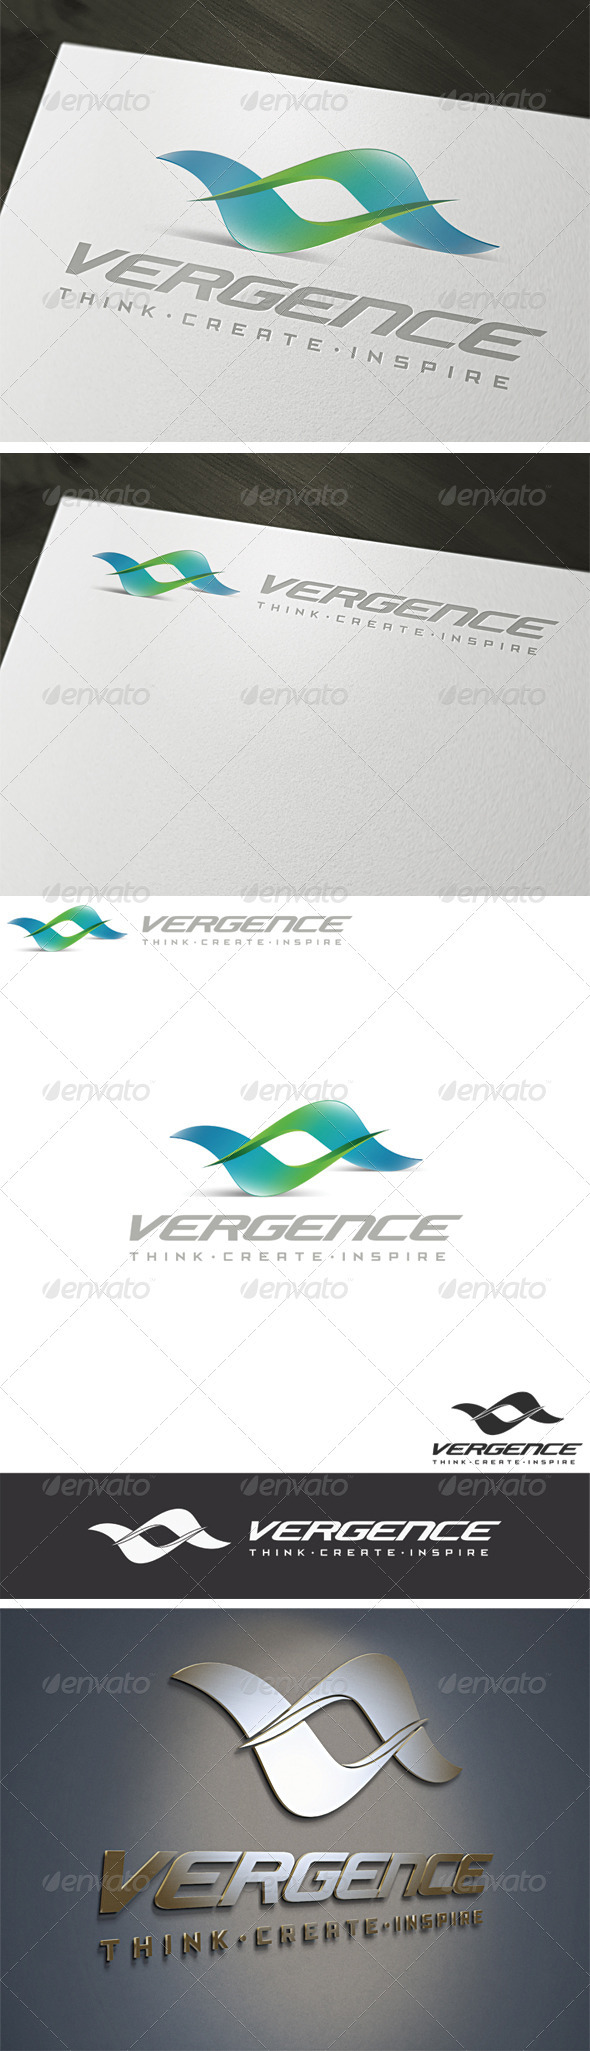 3D Vergence Logo Template - Vector Abstract